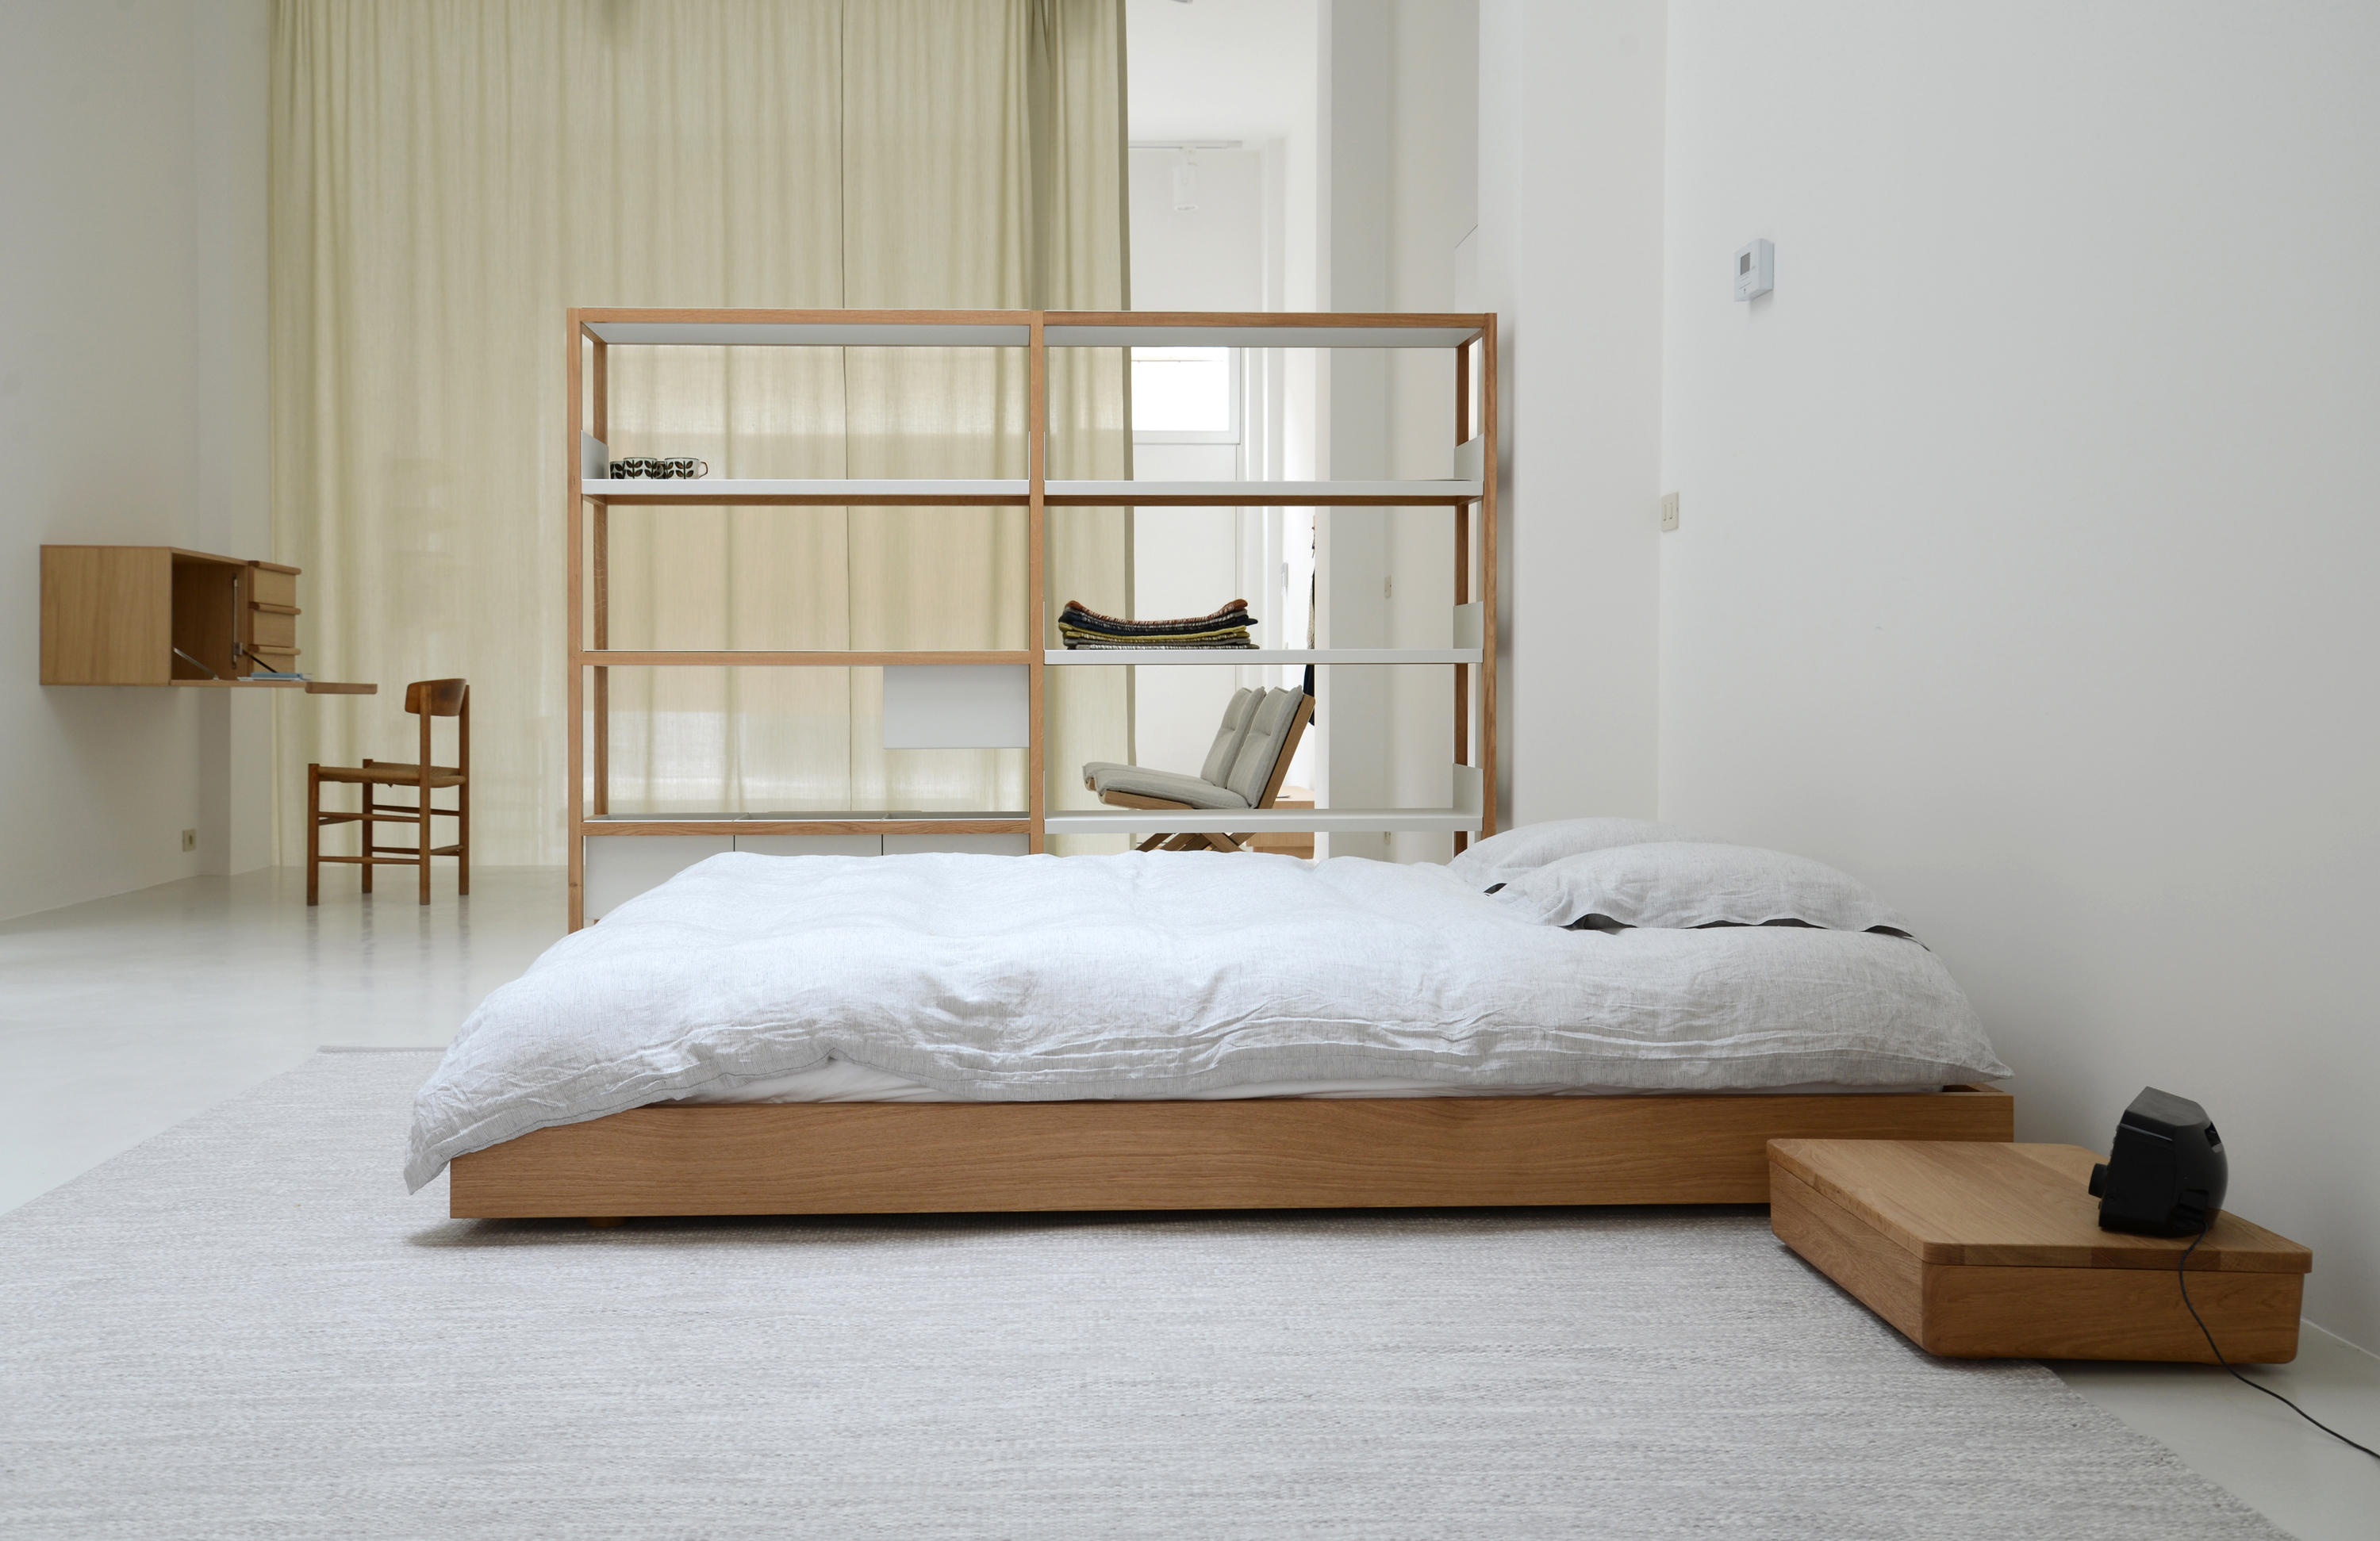 OAK BED FRAME - Single beds from Bautier | Architonic